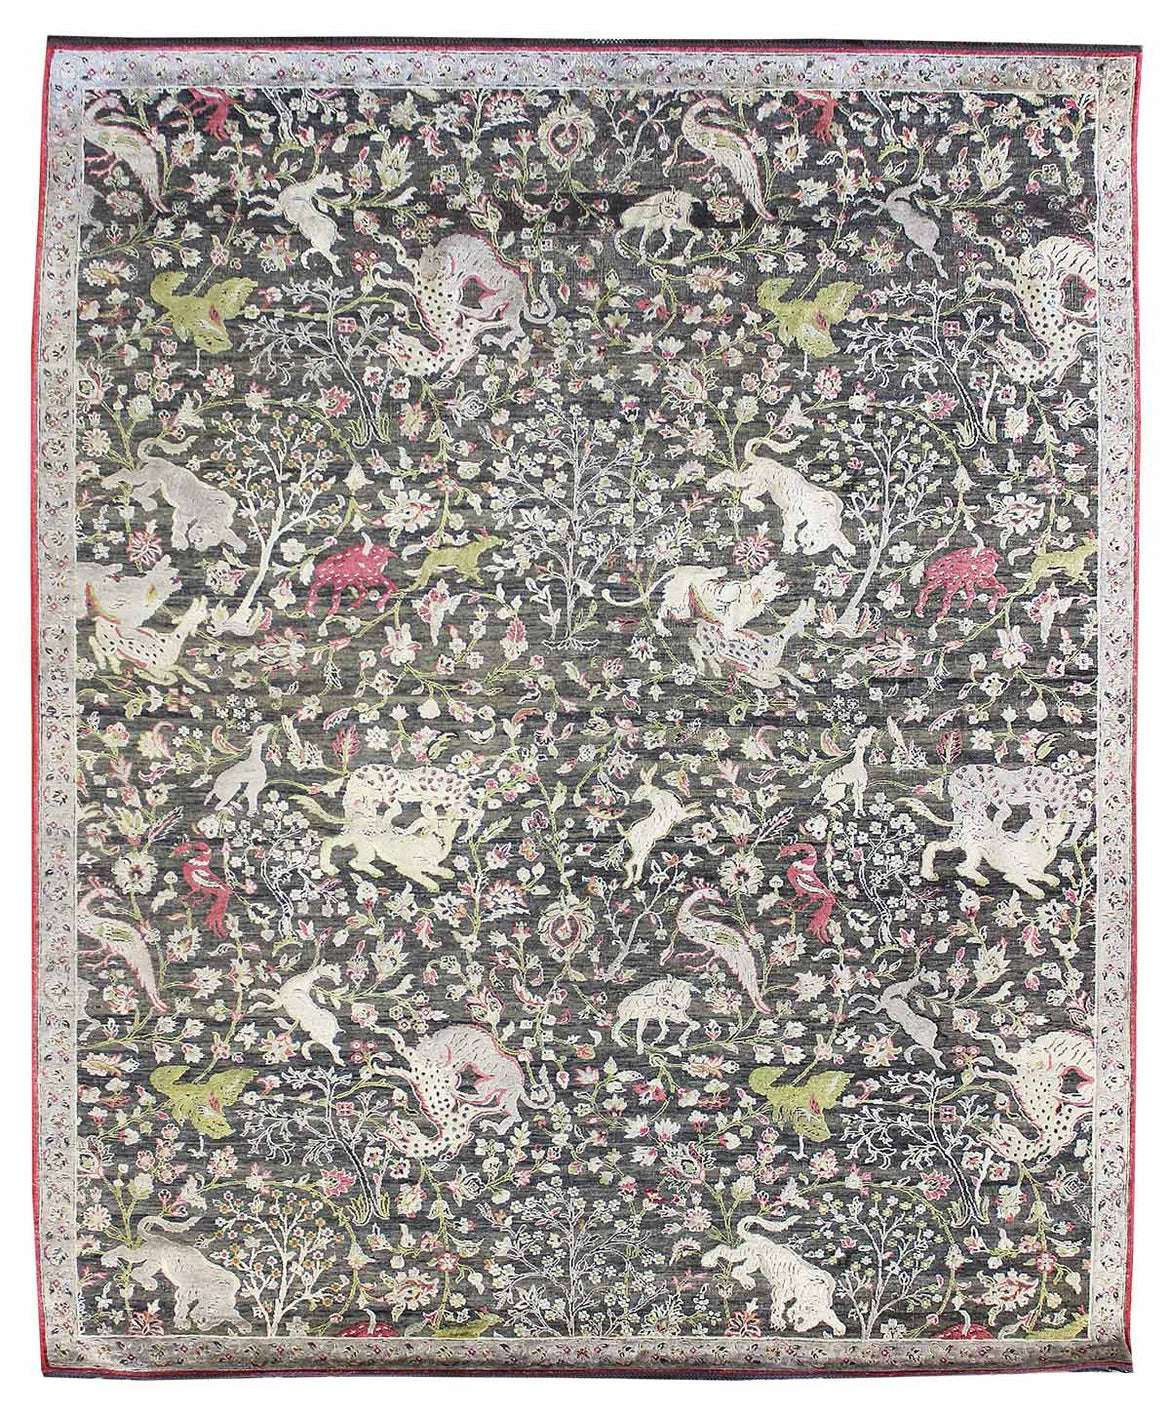 Transitional Rug of the Month: April